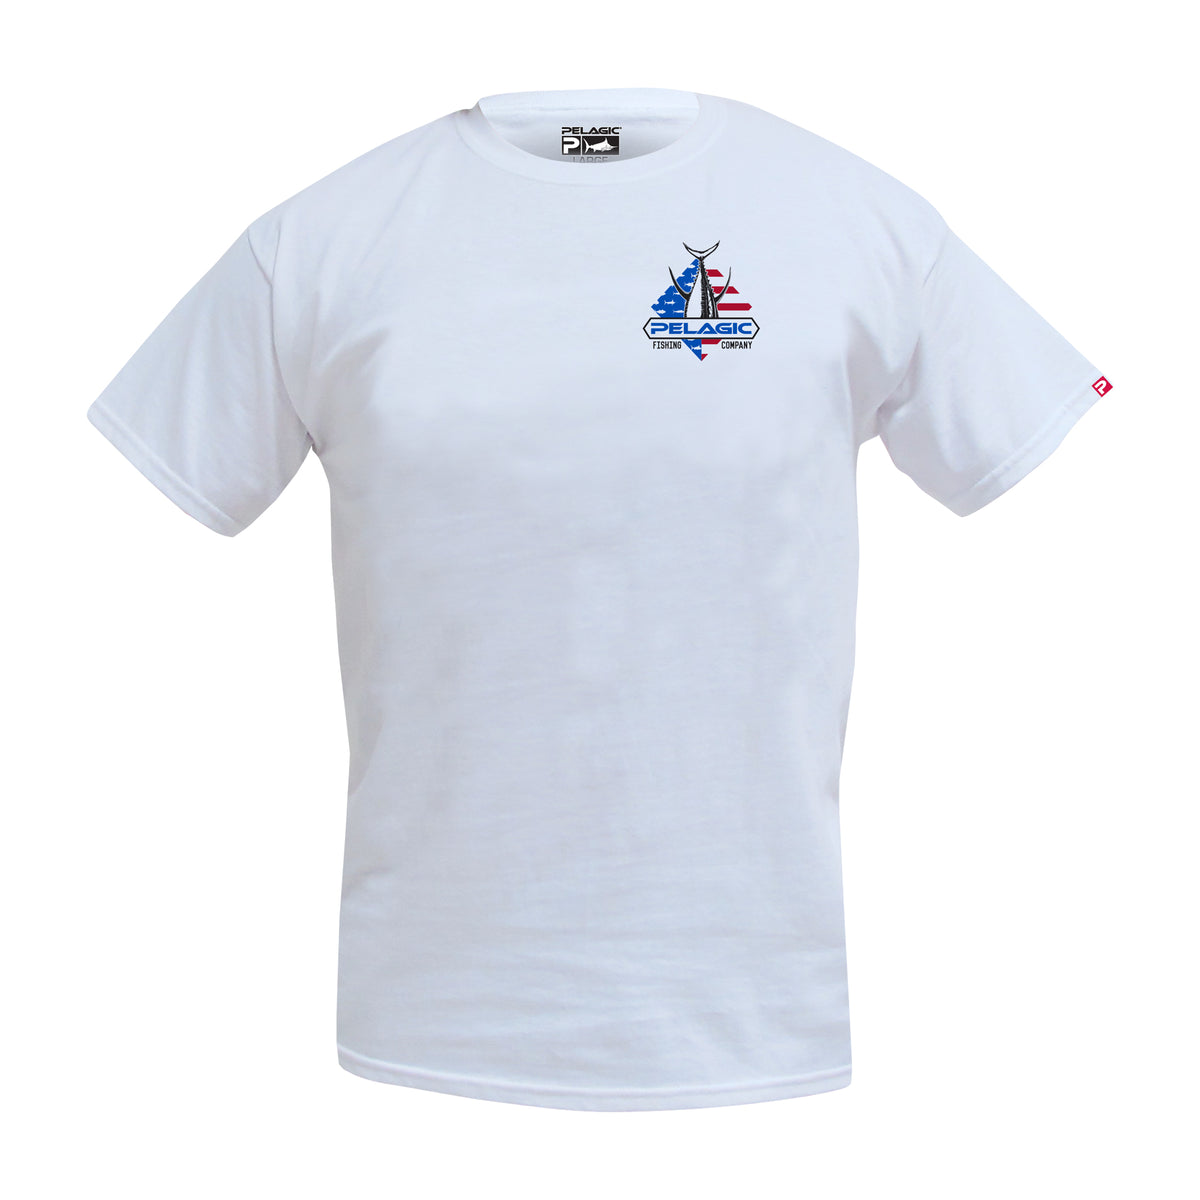 Patriot Tuna Fishing T-shirt Big Image - 2